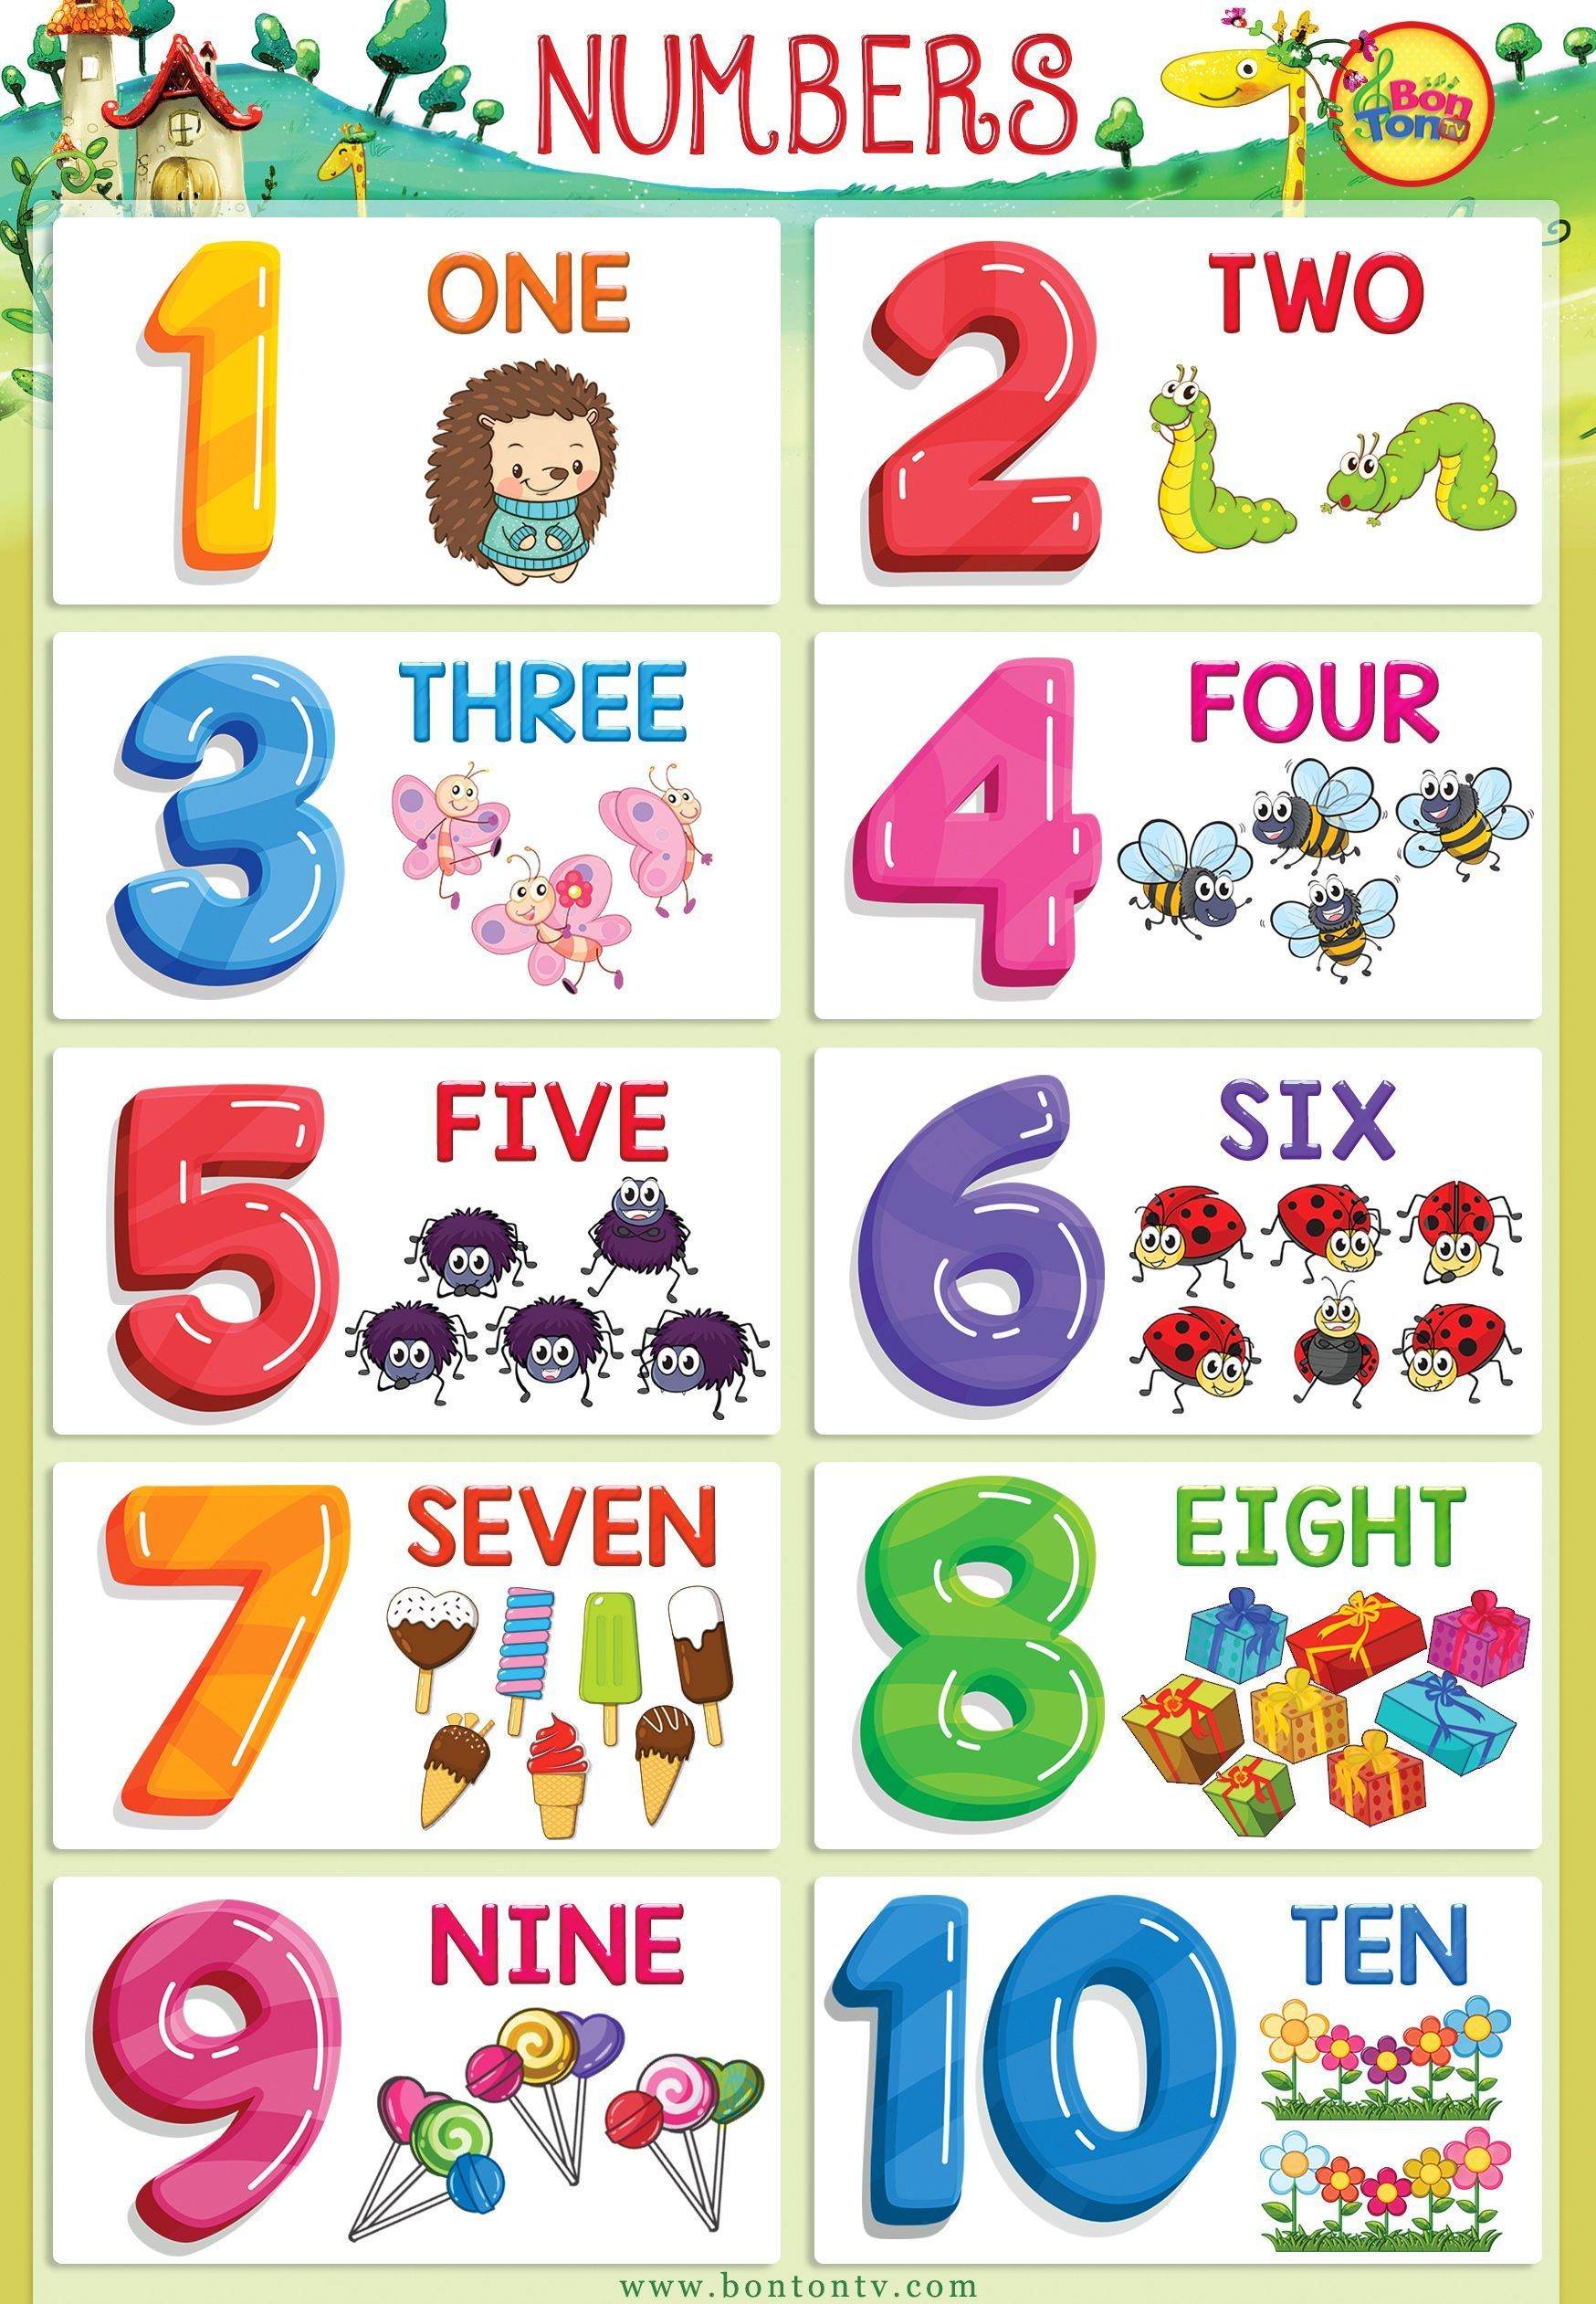 2 Math Worksheets 1 30 Hard Printable Math Worksheets 1 30 Hard Numbers Poste Learning Numbers Preschool Kids Worksheets Preschool Numbers Preschool Printables